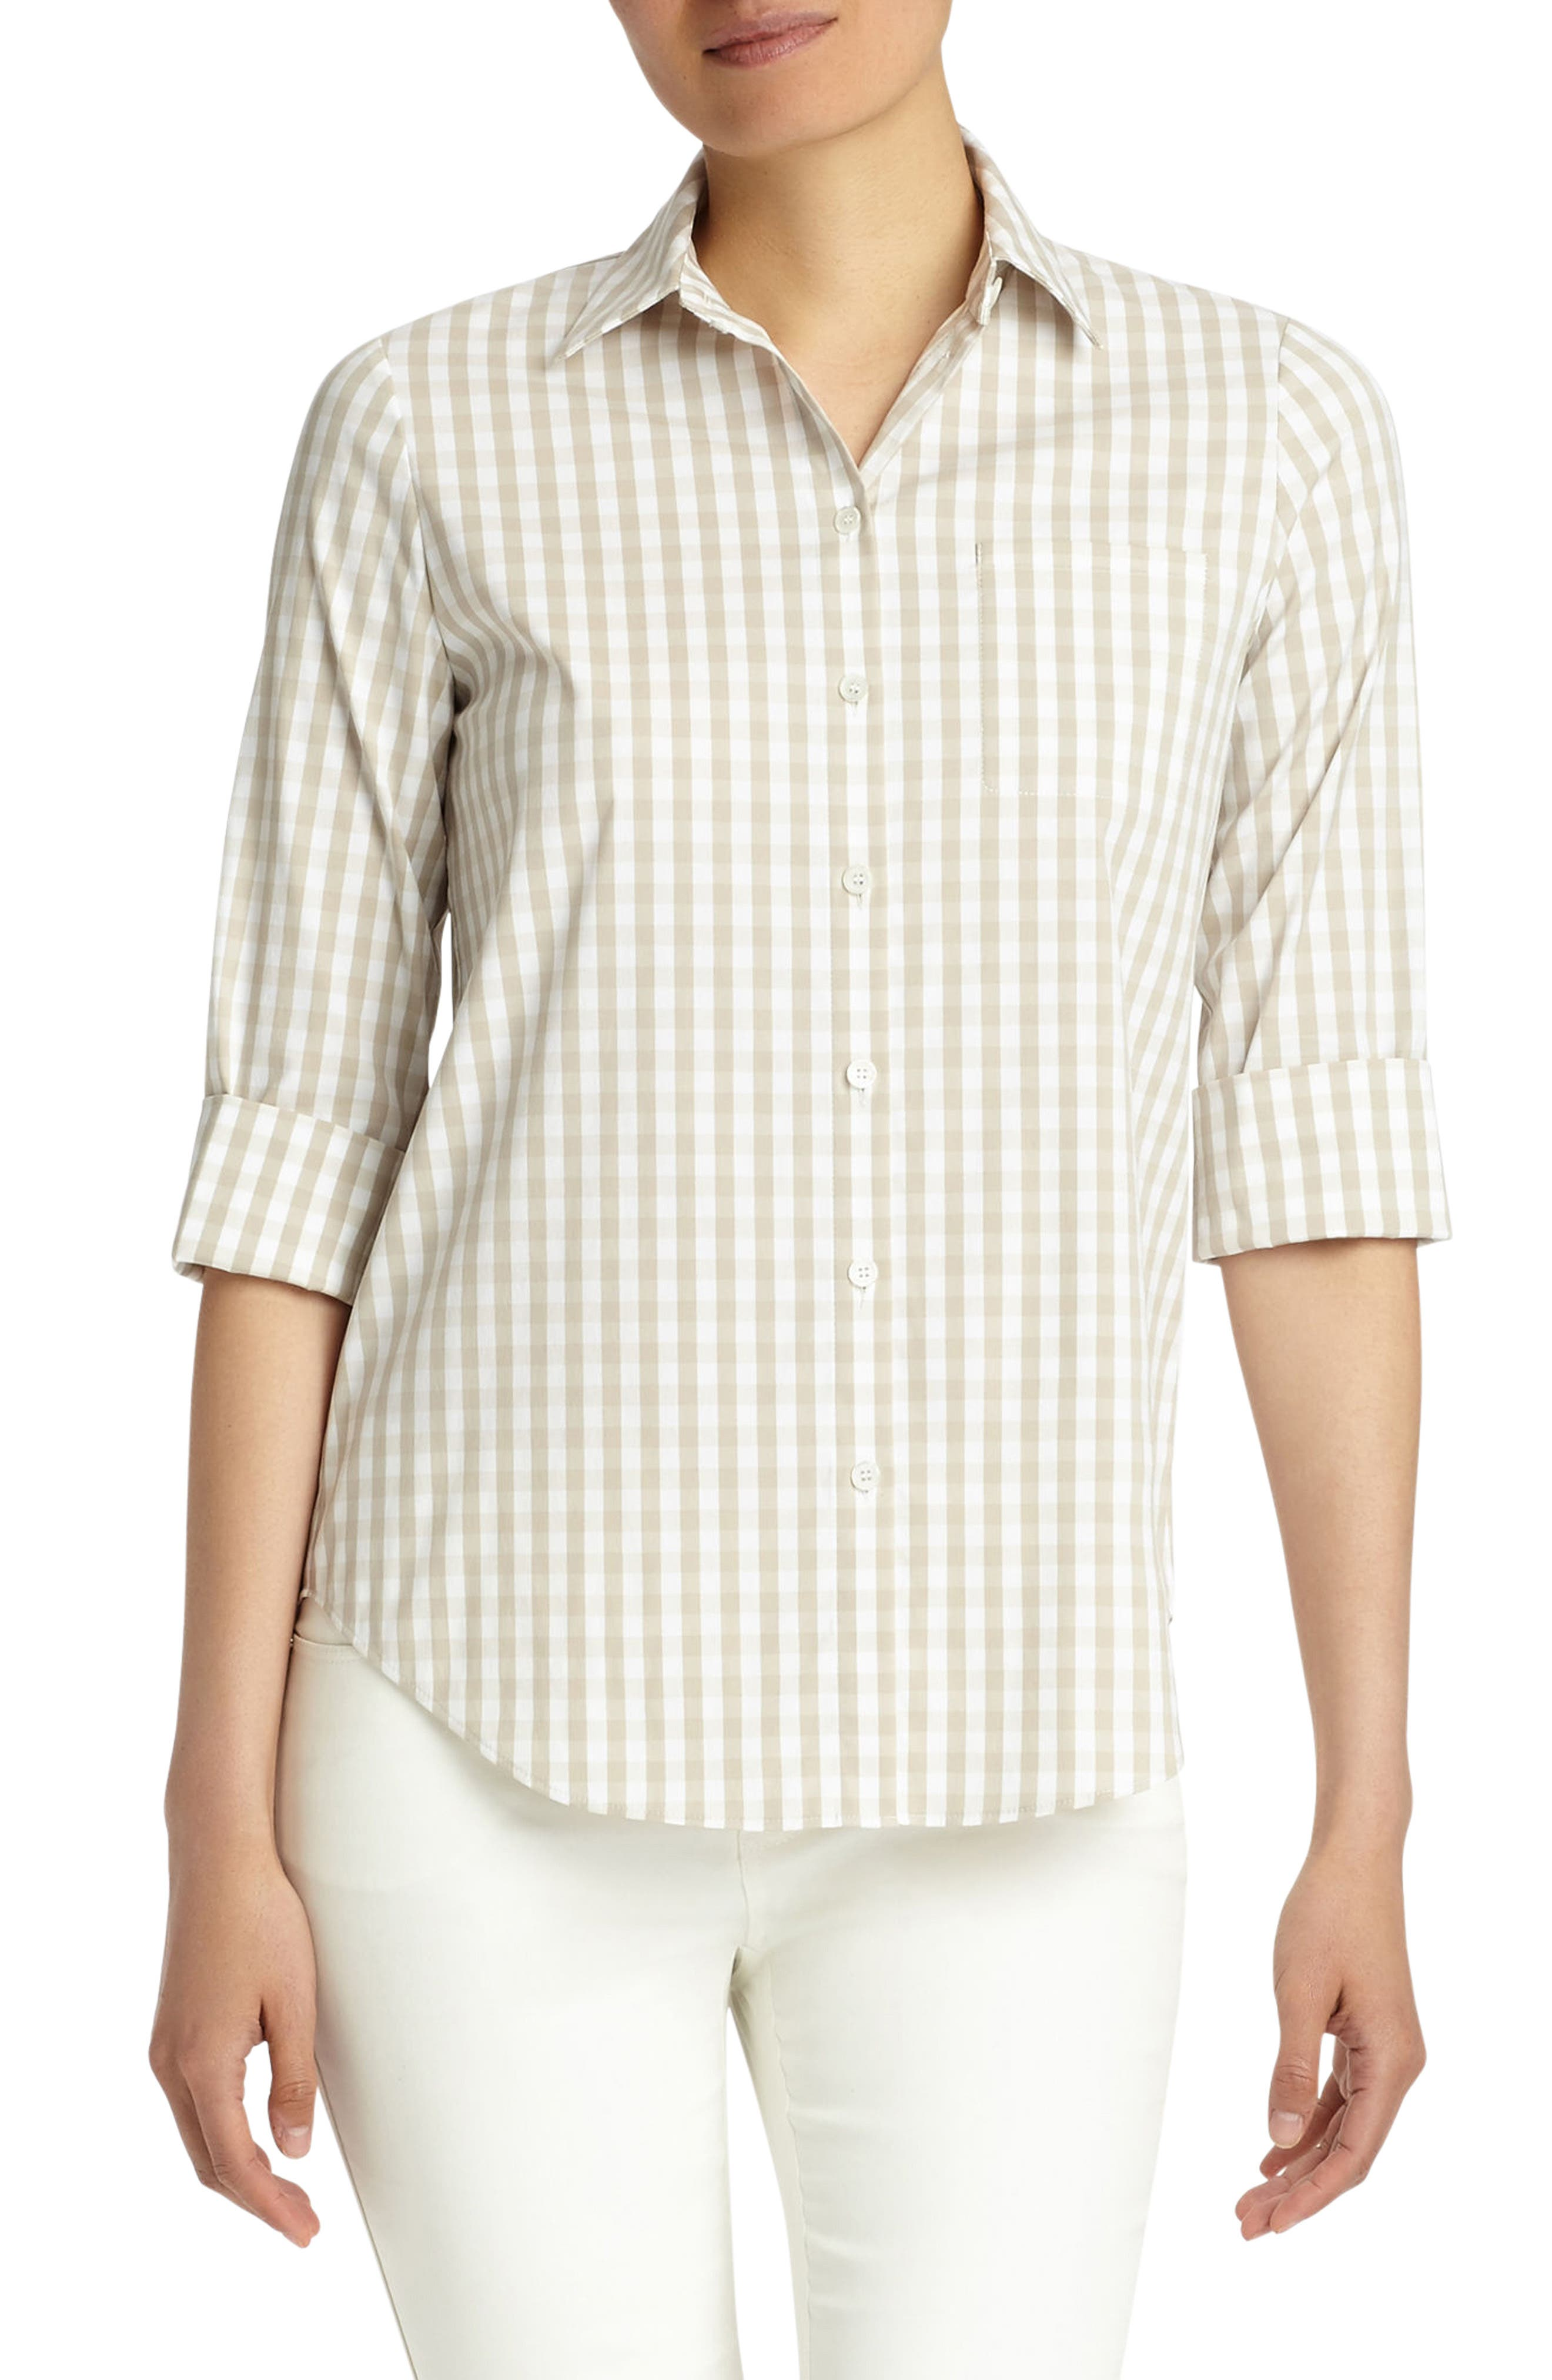 Paget Gingham Blouse,                         Main,                         color, 200